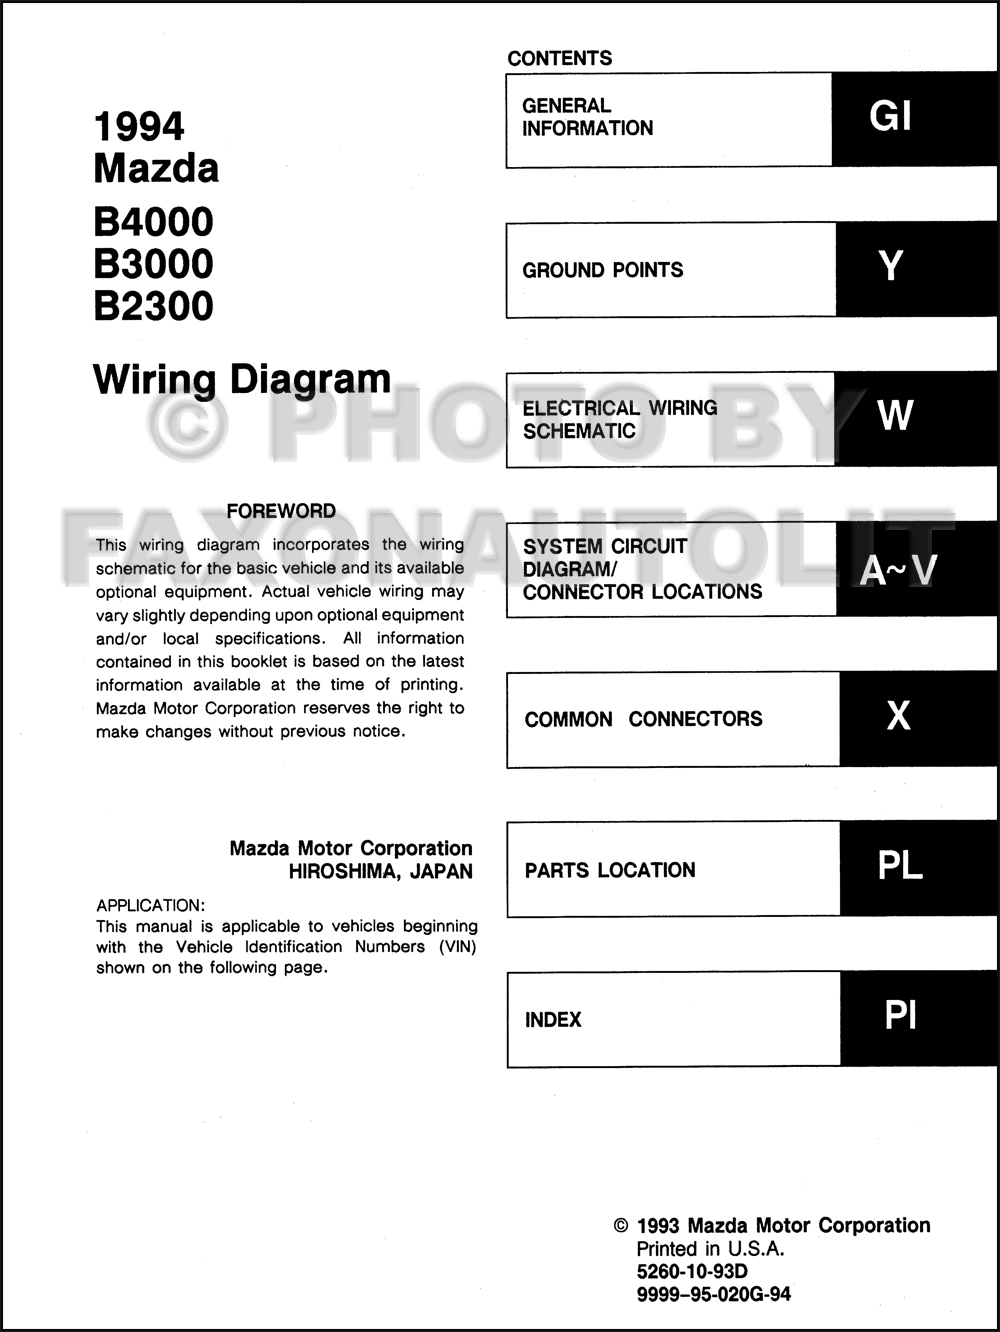 1994MazdaB4000B3000B23000OWD TOC 1994 mazda b4000 b3000 b2300 pickup truck wiring diagram manual 1996 mazda b4000 fuse box diagram at gsmx.co